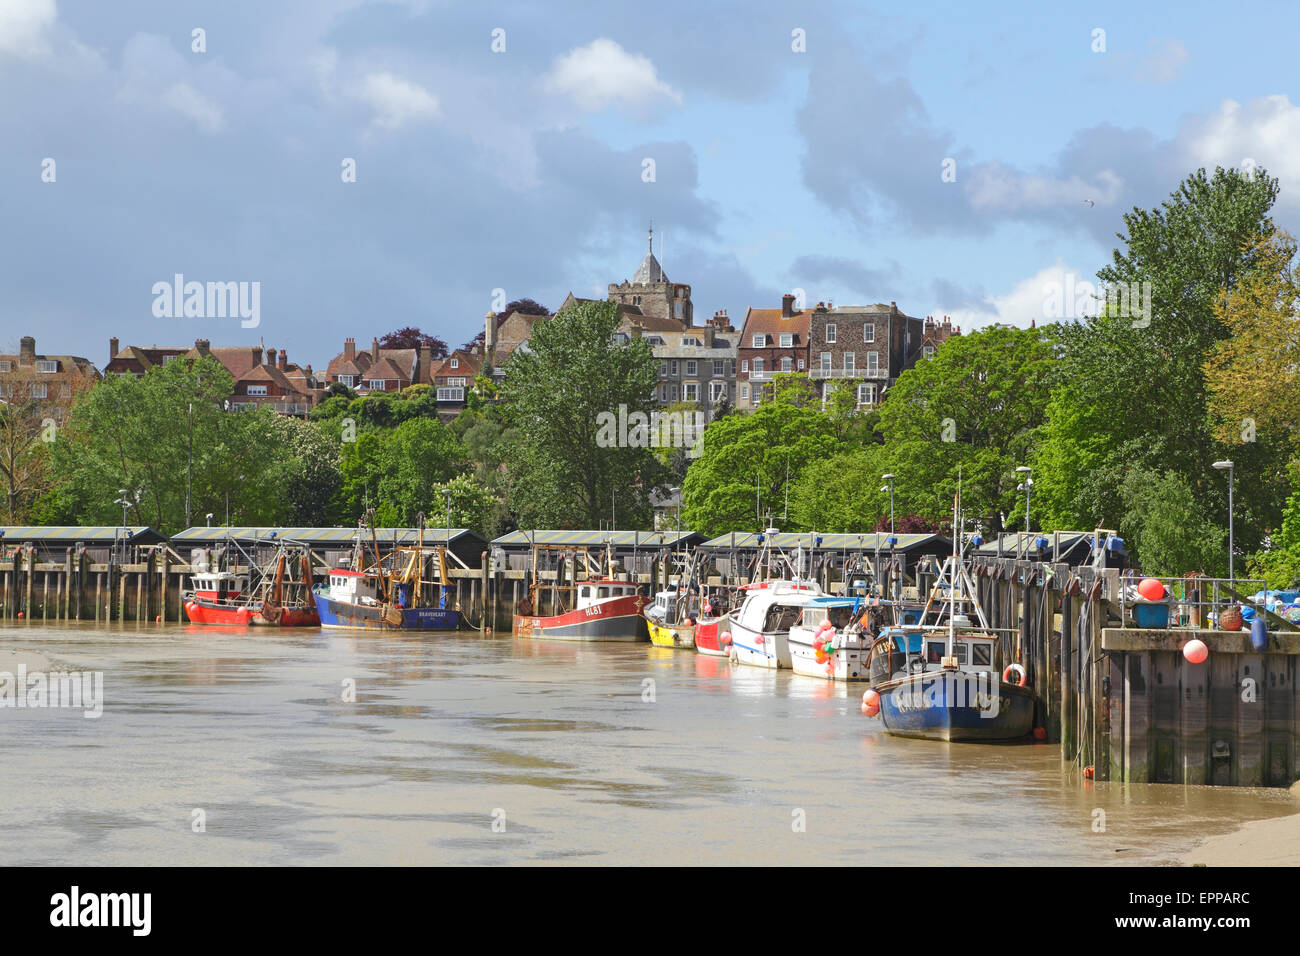 Les bateaux de pêche amarrés au quai de Simmons, Rye, East Sussex, GB, UK Photo Stock